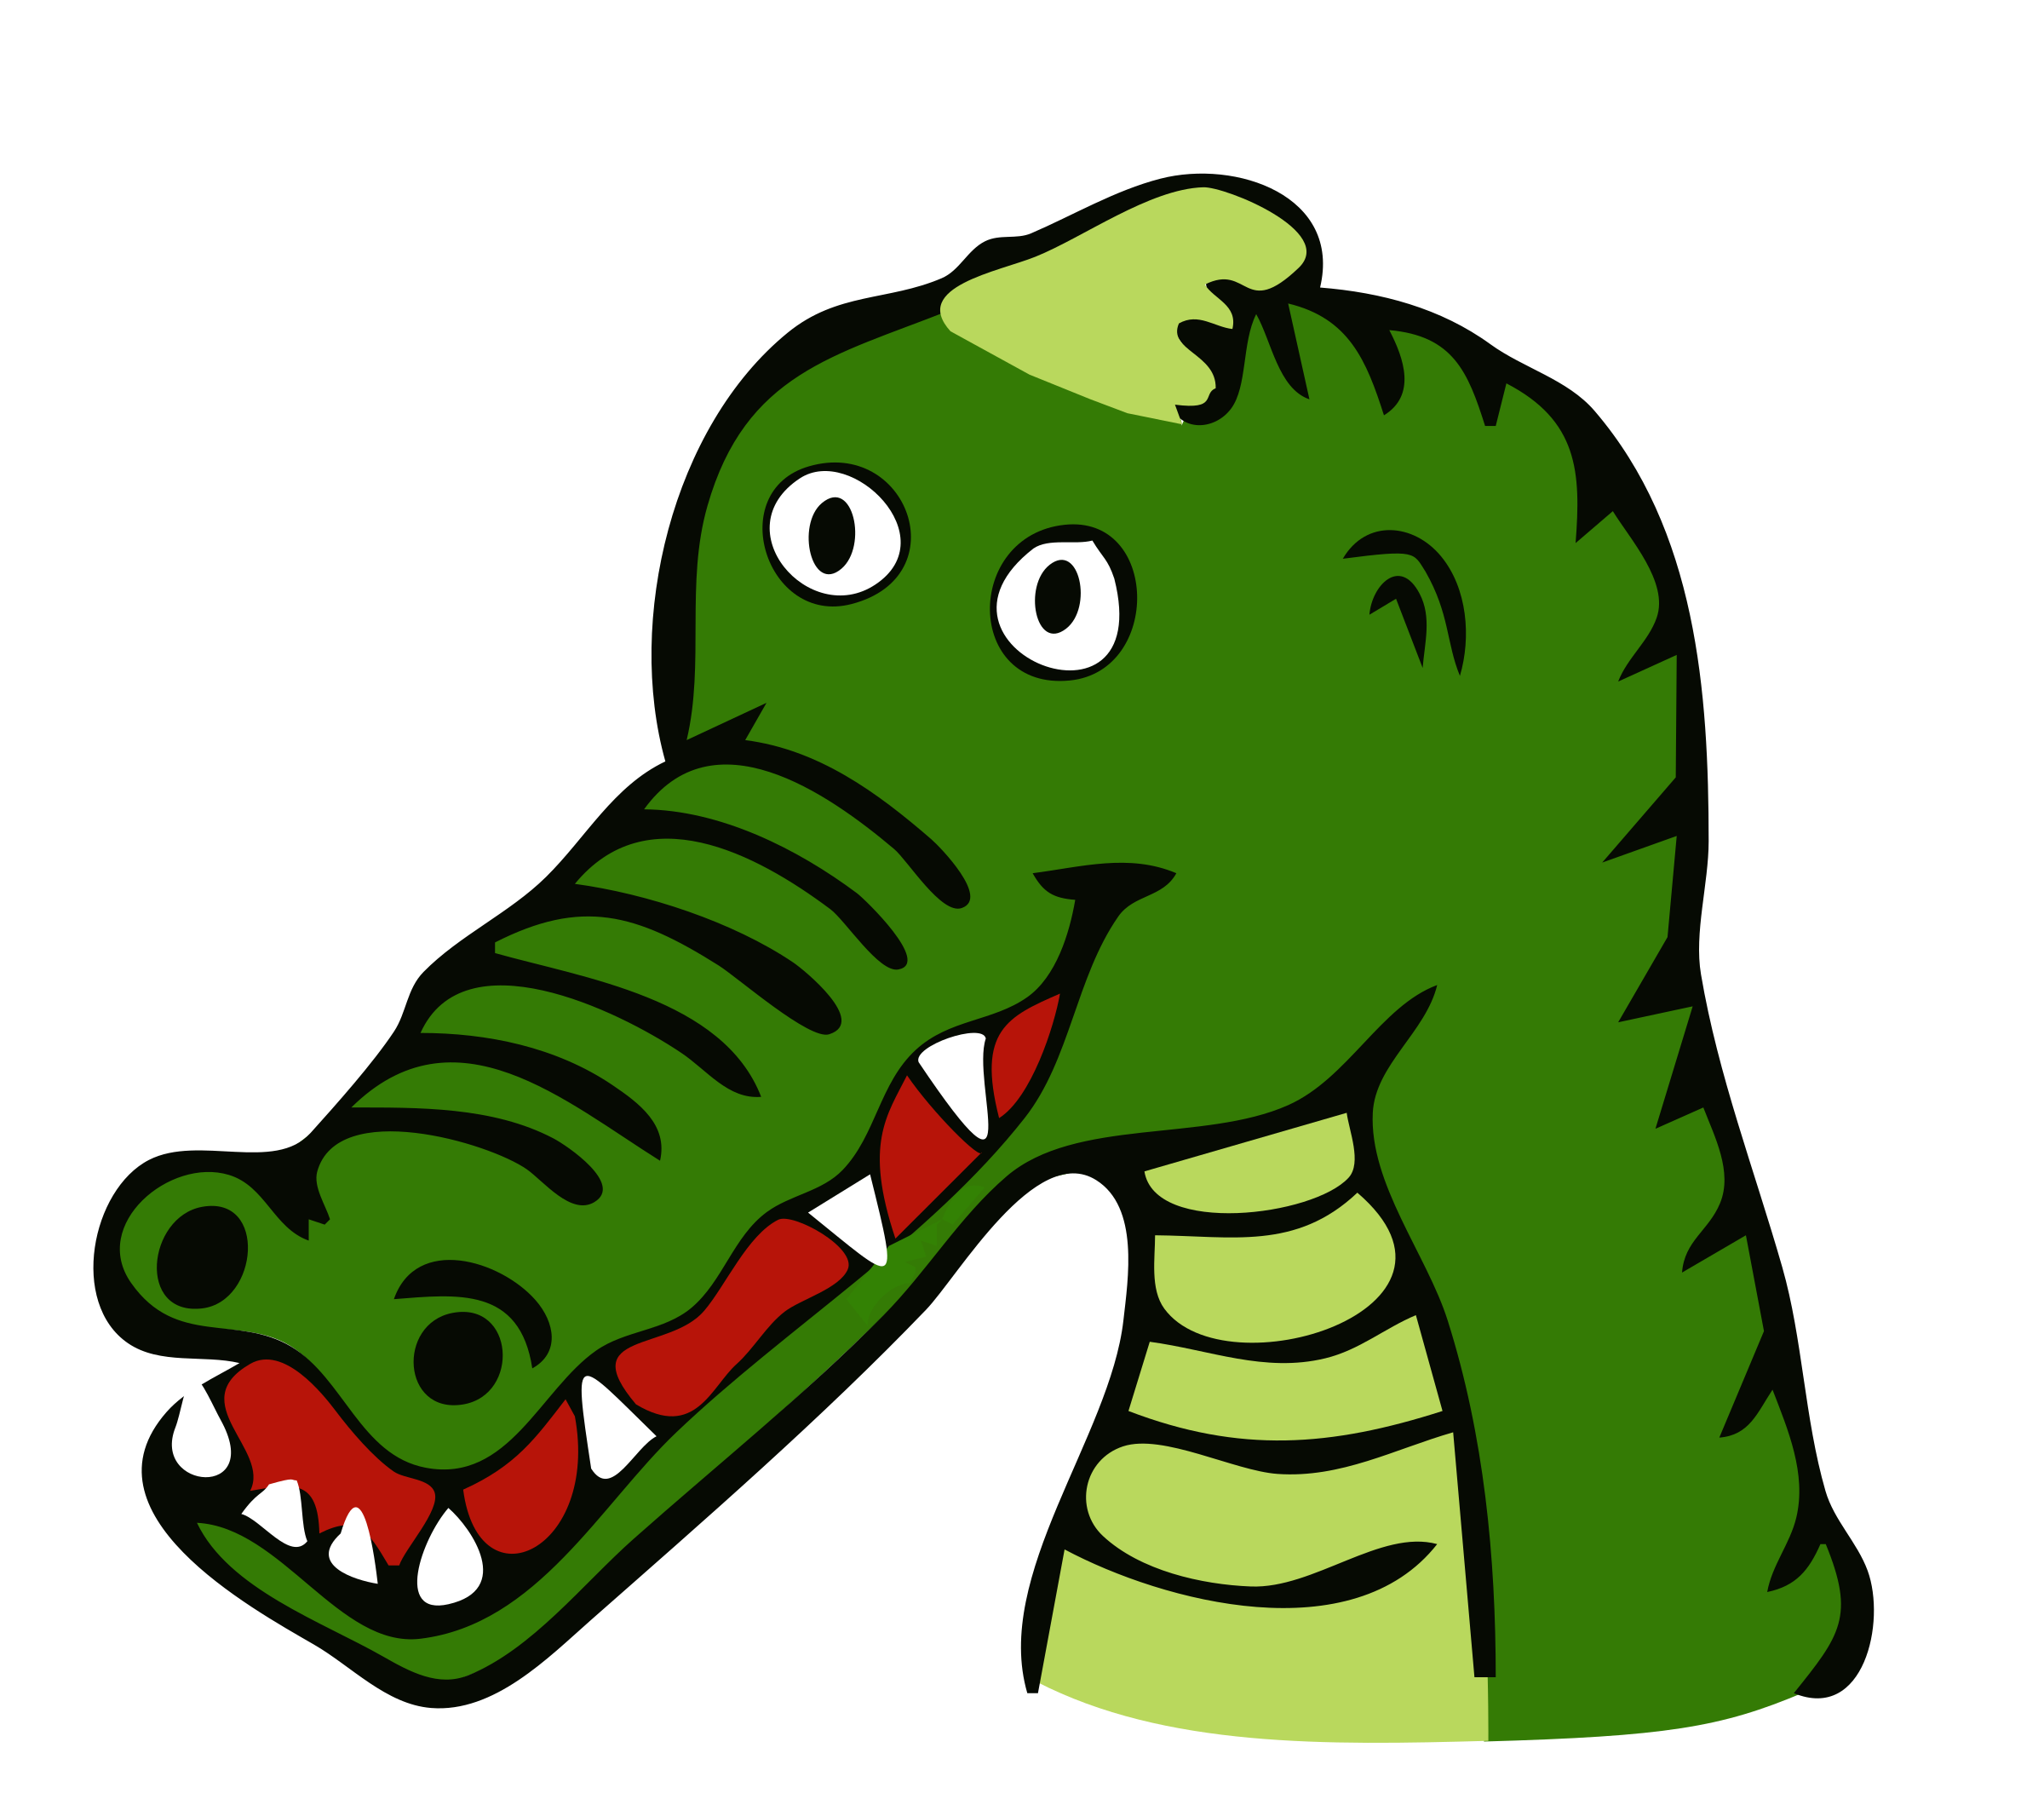 drawn crocodile by frankes